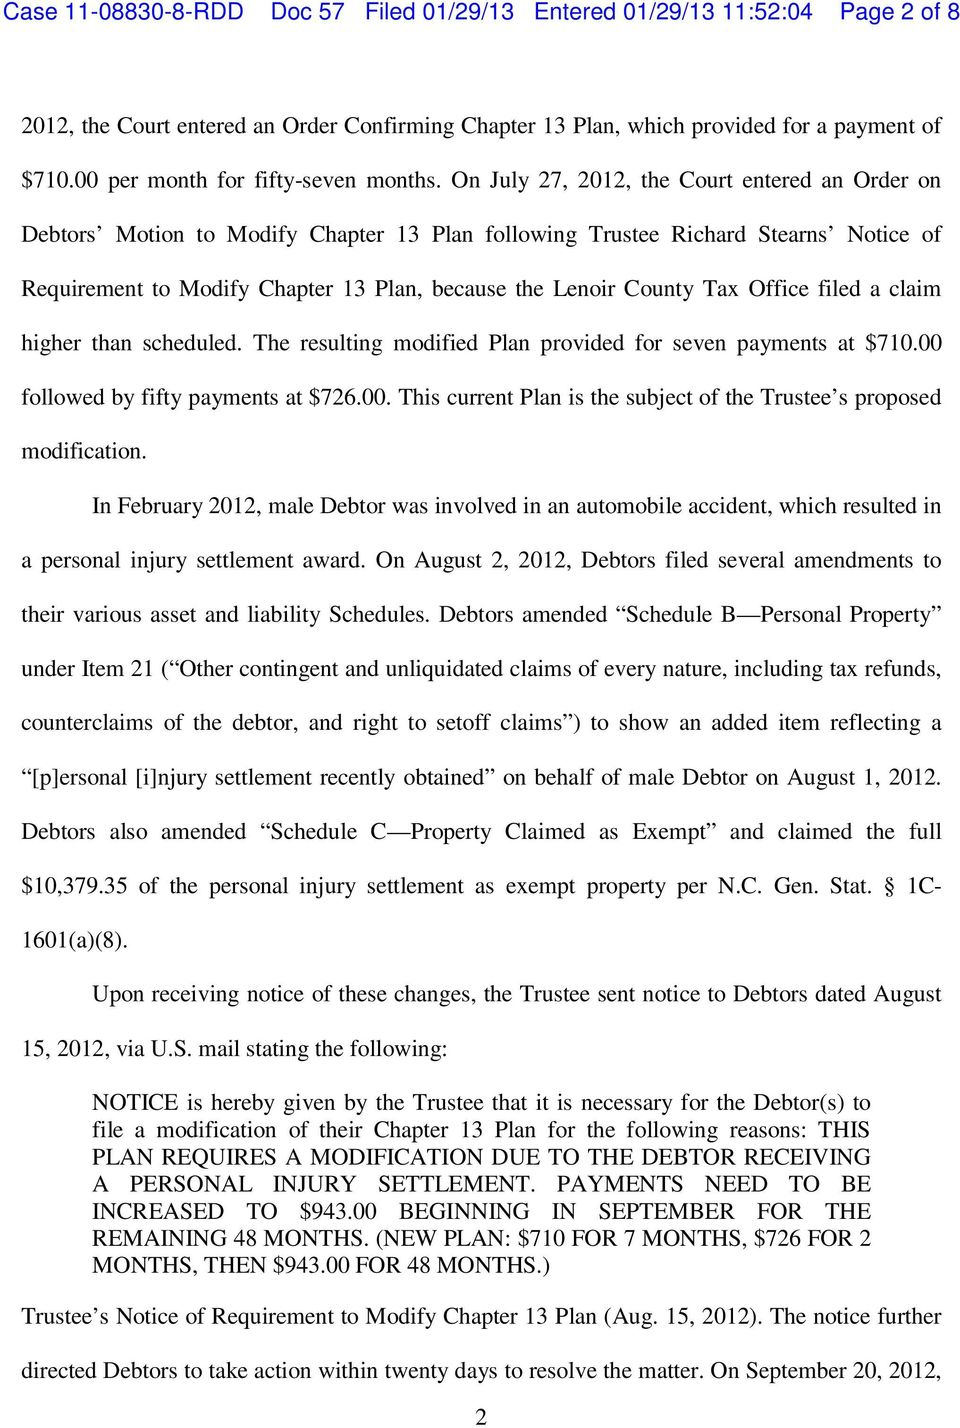 On July 27, 2012, the Court entered an Order on Debtors Motion to Modify Chapter 13 Plan following Trustee Richard Stearns Notice of Requirement to Modify Chapter 13 Plan, because the Lenoir County